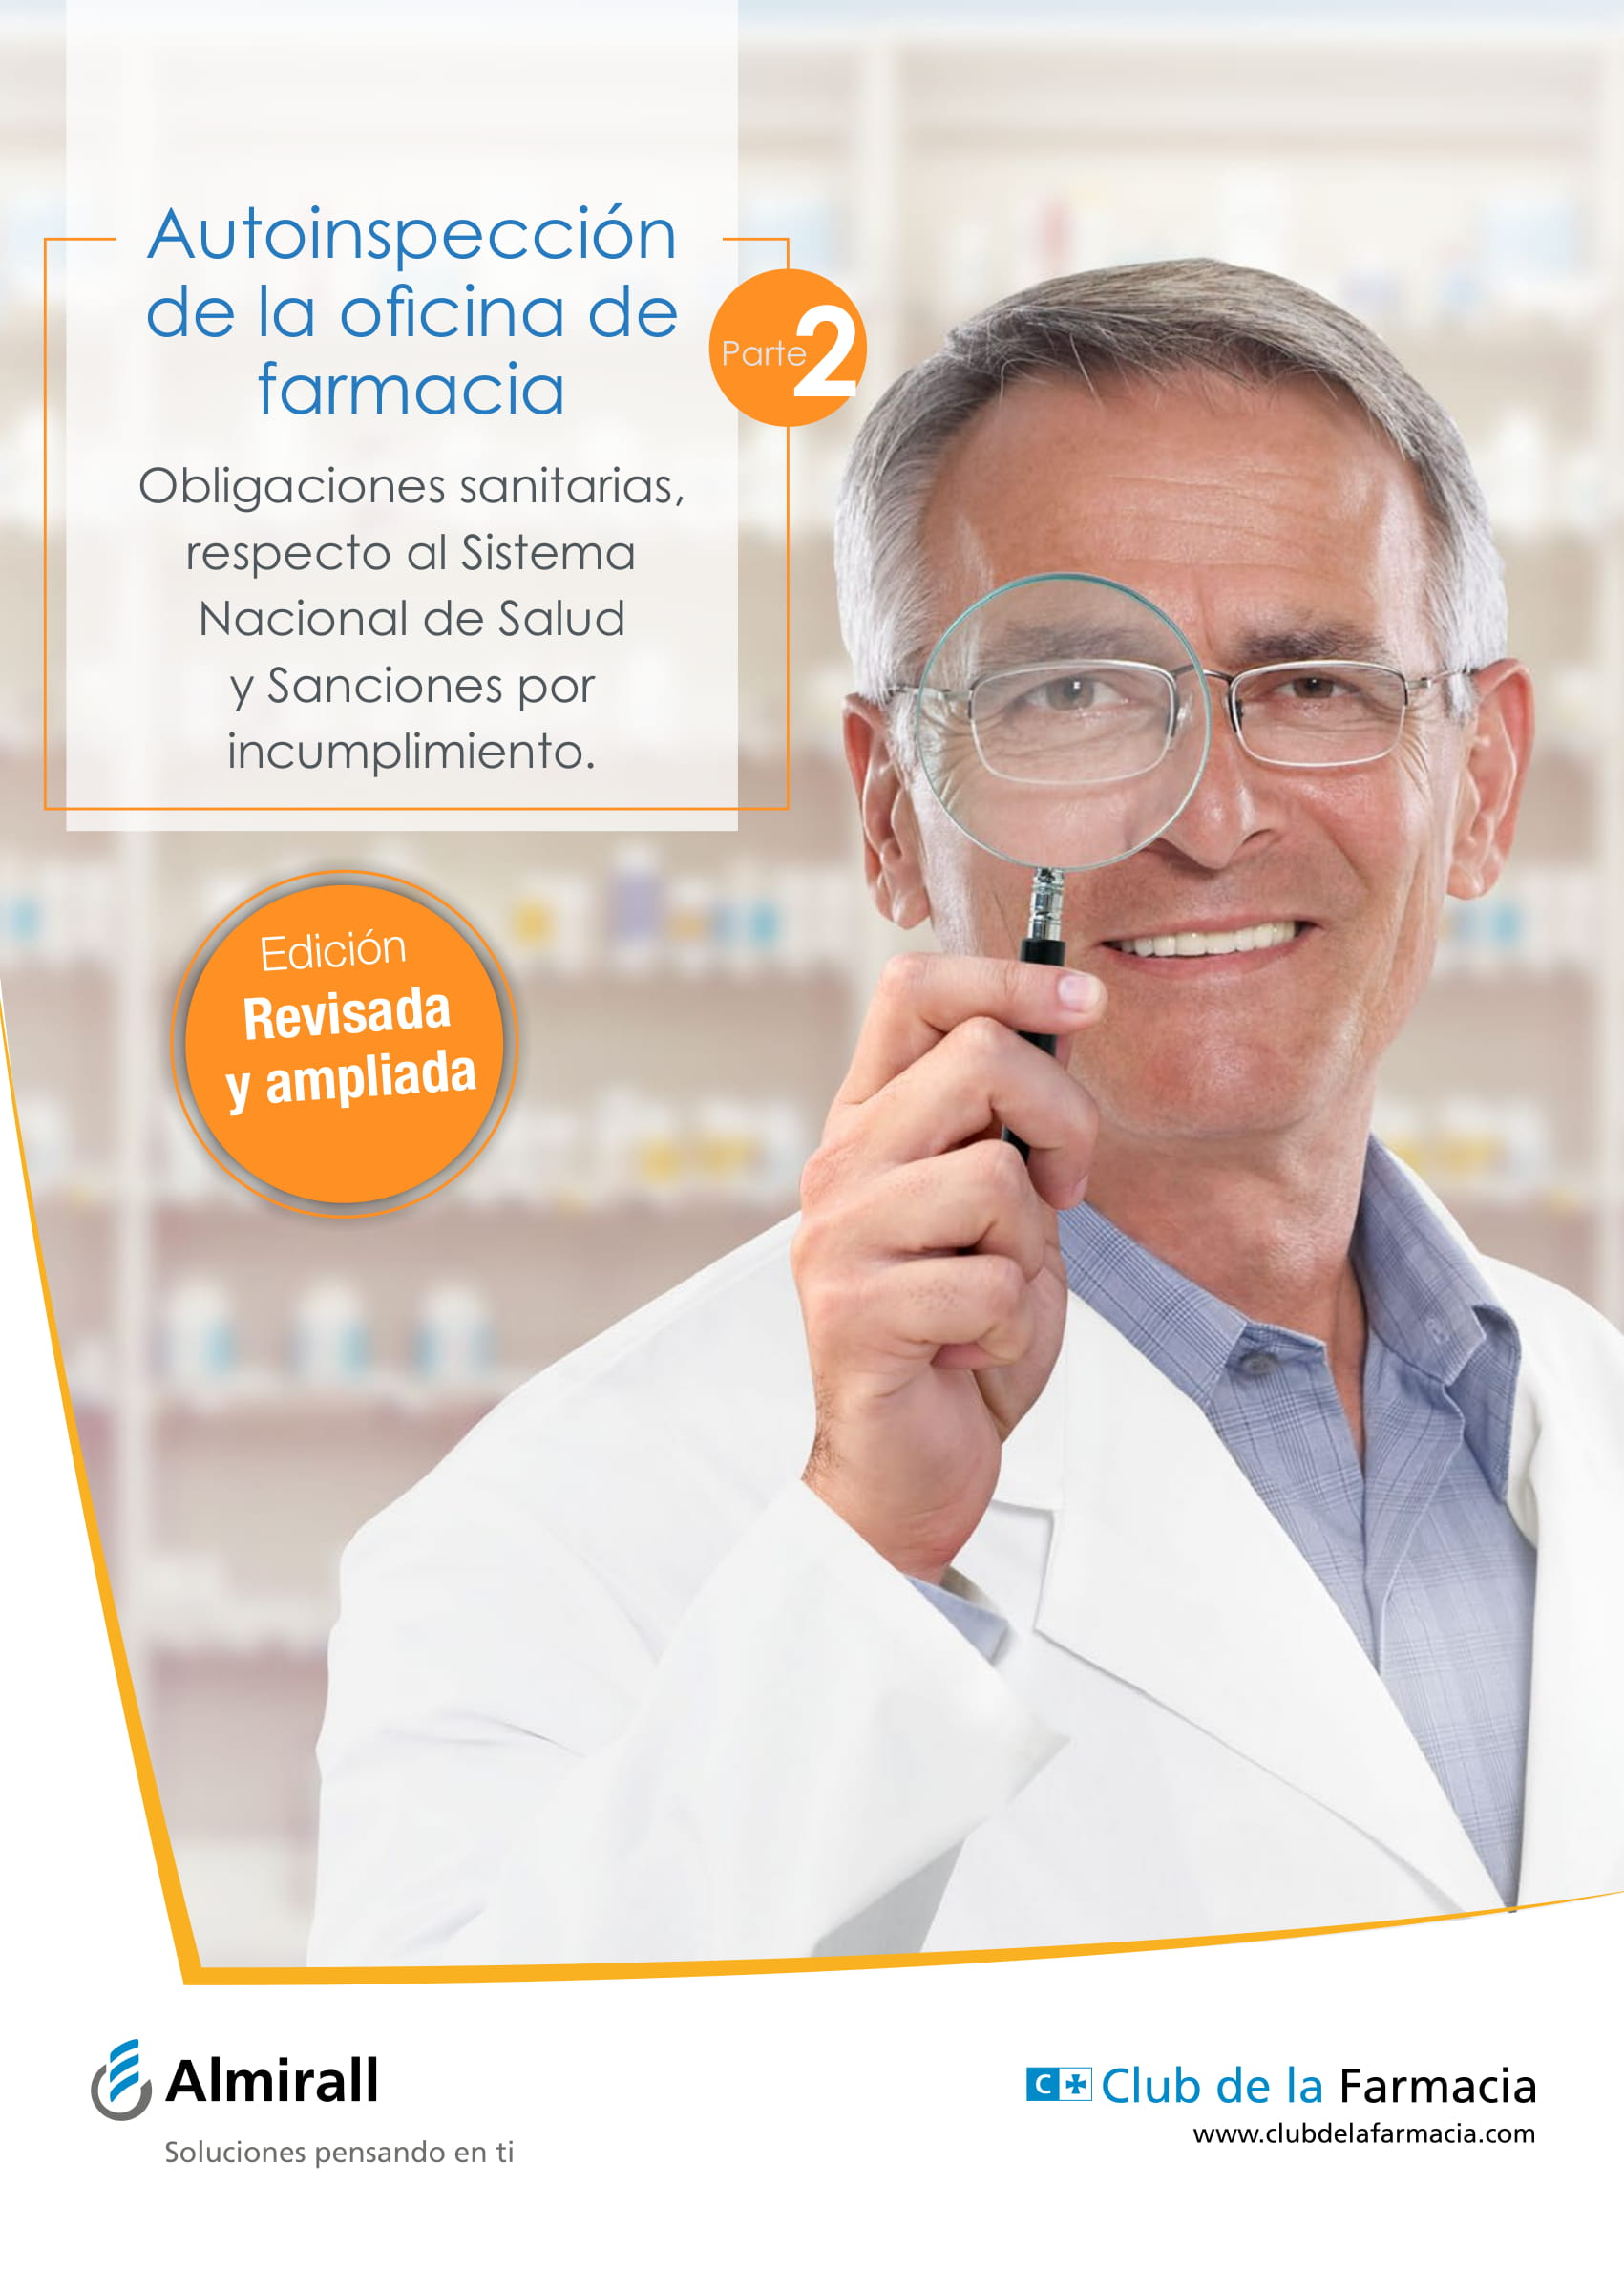 Ebooks-Club de la Farmacia-34.jpg